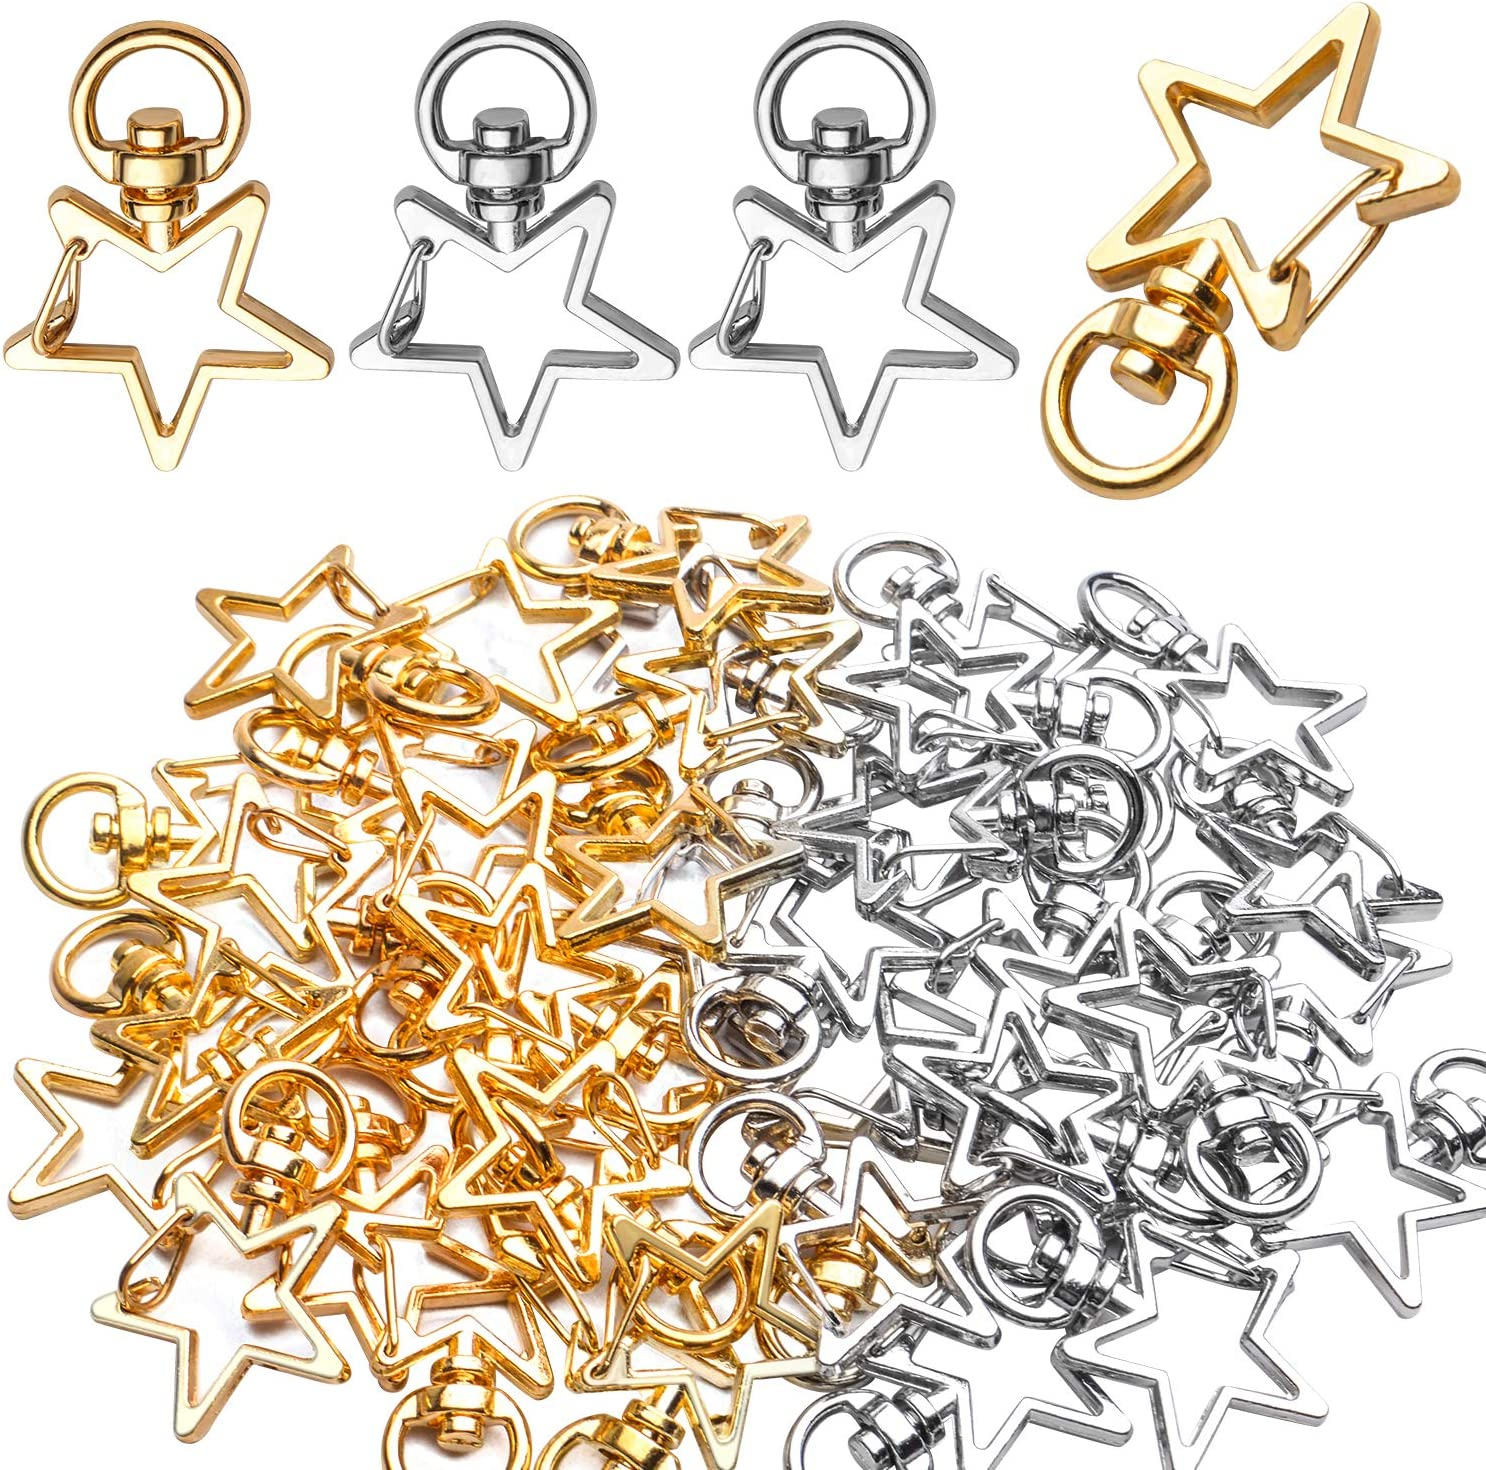 Swivel Clasps Clips,40pcs Metal Swivel Lobster Claw Clasp Star Shape Snap Hook Clip Small DIY Accessories for Crafting Keyrings Bags Jewellery-Gold,Silver